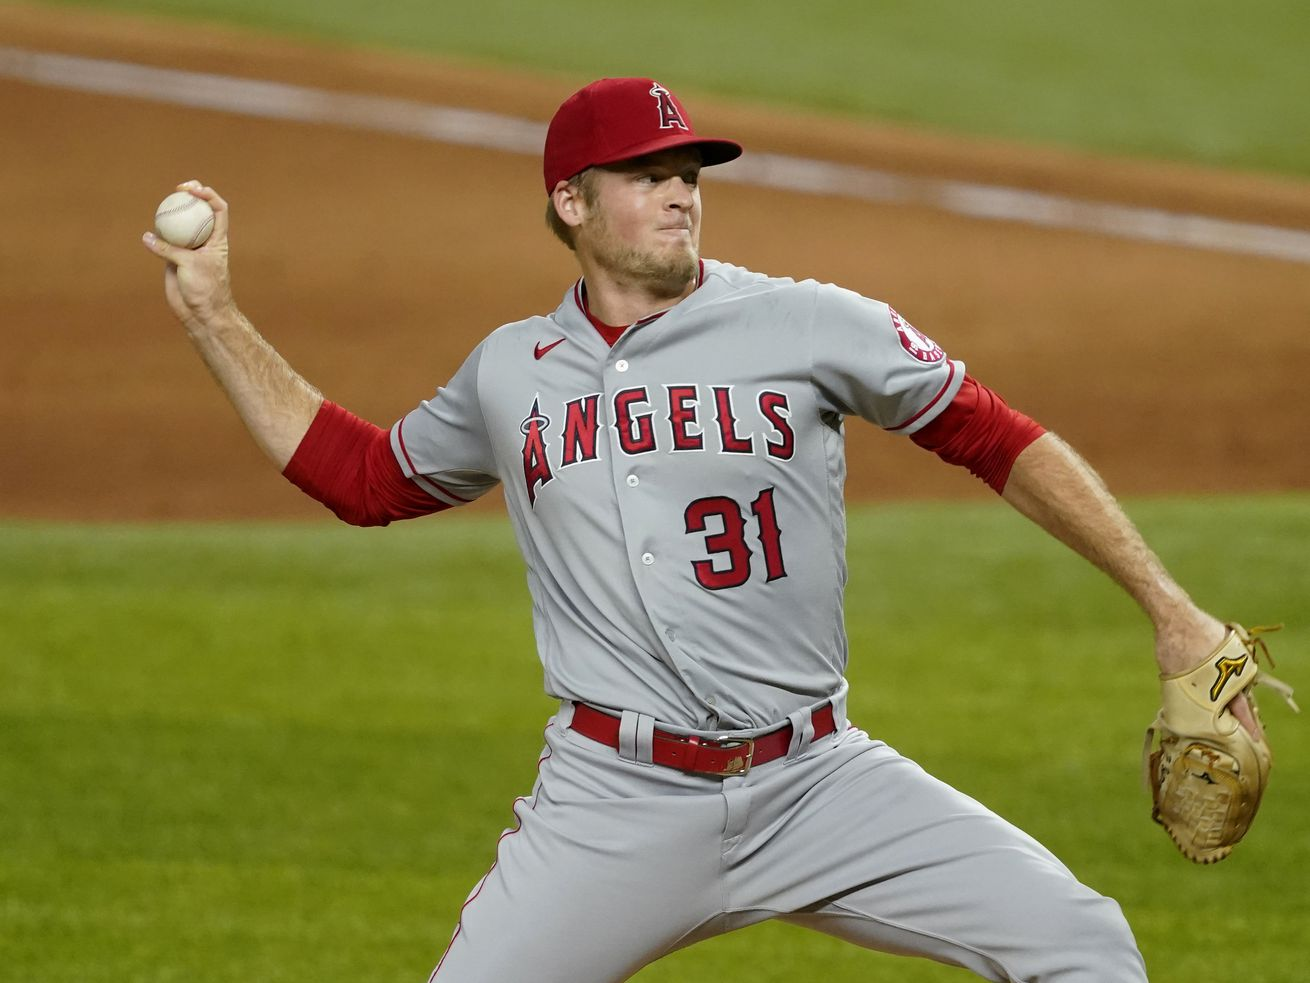 In this Sept. 10, 2020, file photo, Los Angeles Angels relief pitcher Ty Buttrey throws to a Texas Rangers batter during the ninth inning of a baseball game in Arlington, Texas. Buttrey has retired from baseball, saying he has lost his affection for the game.